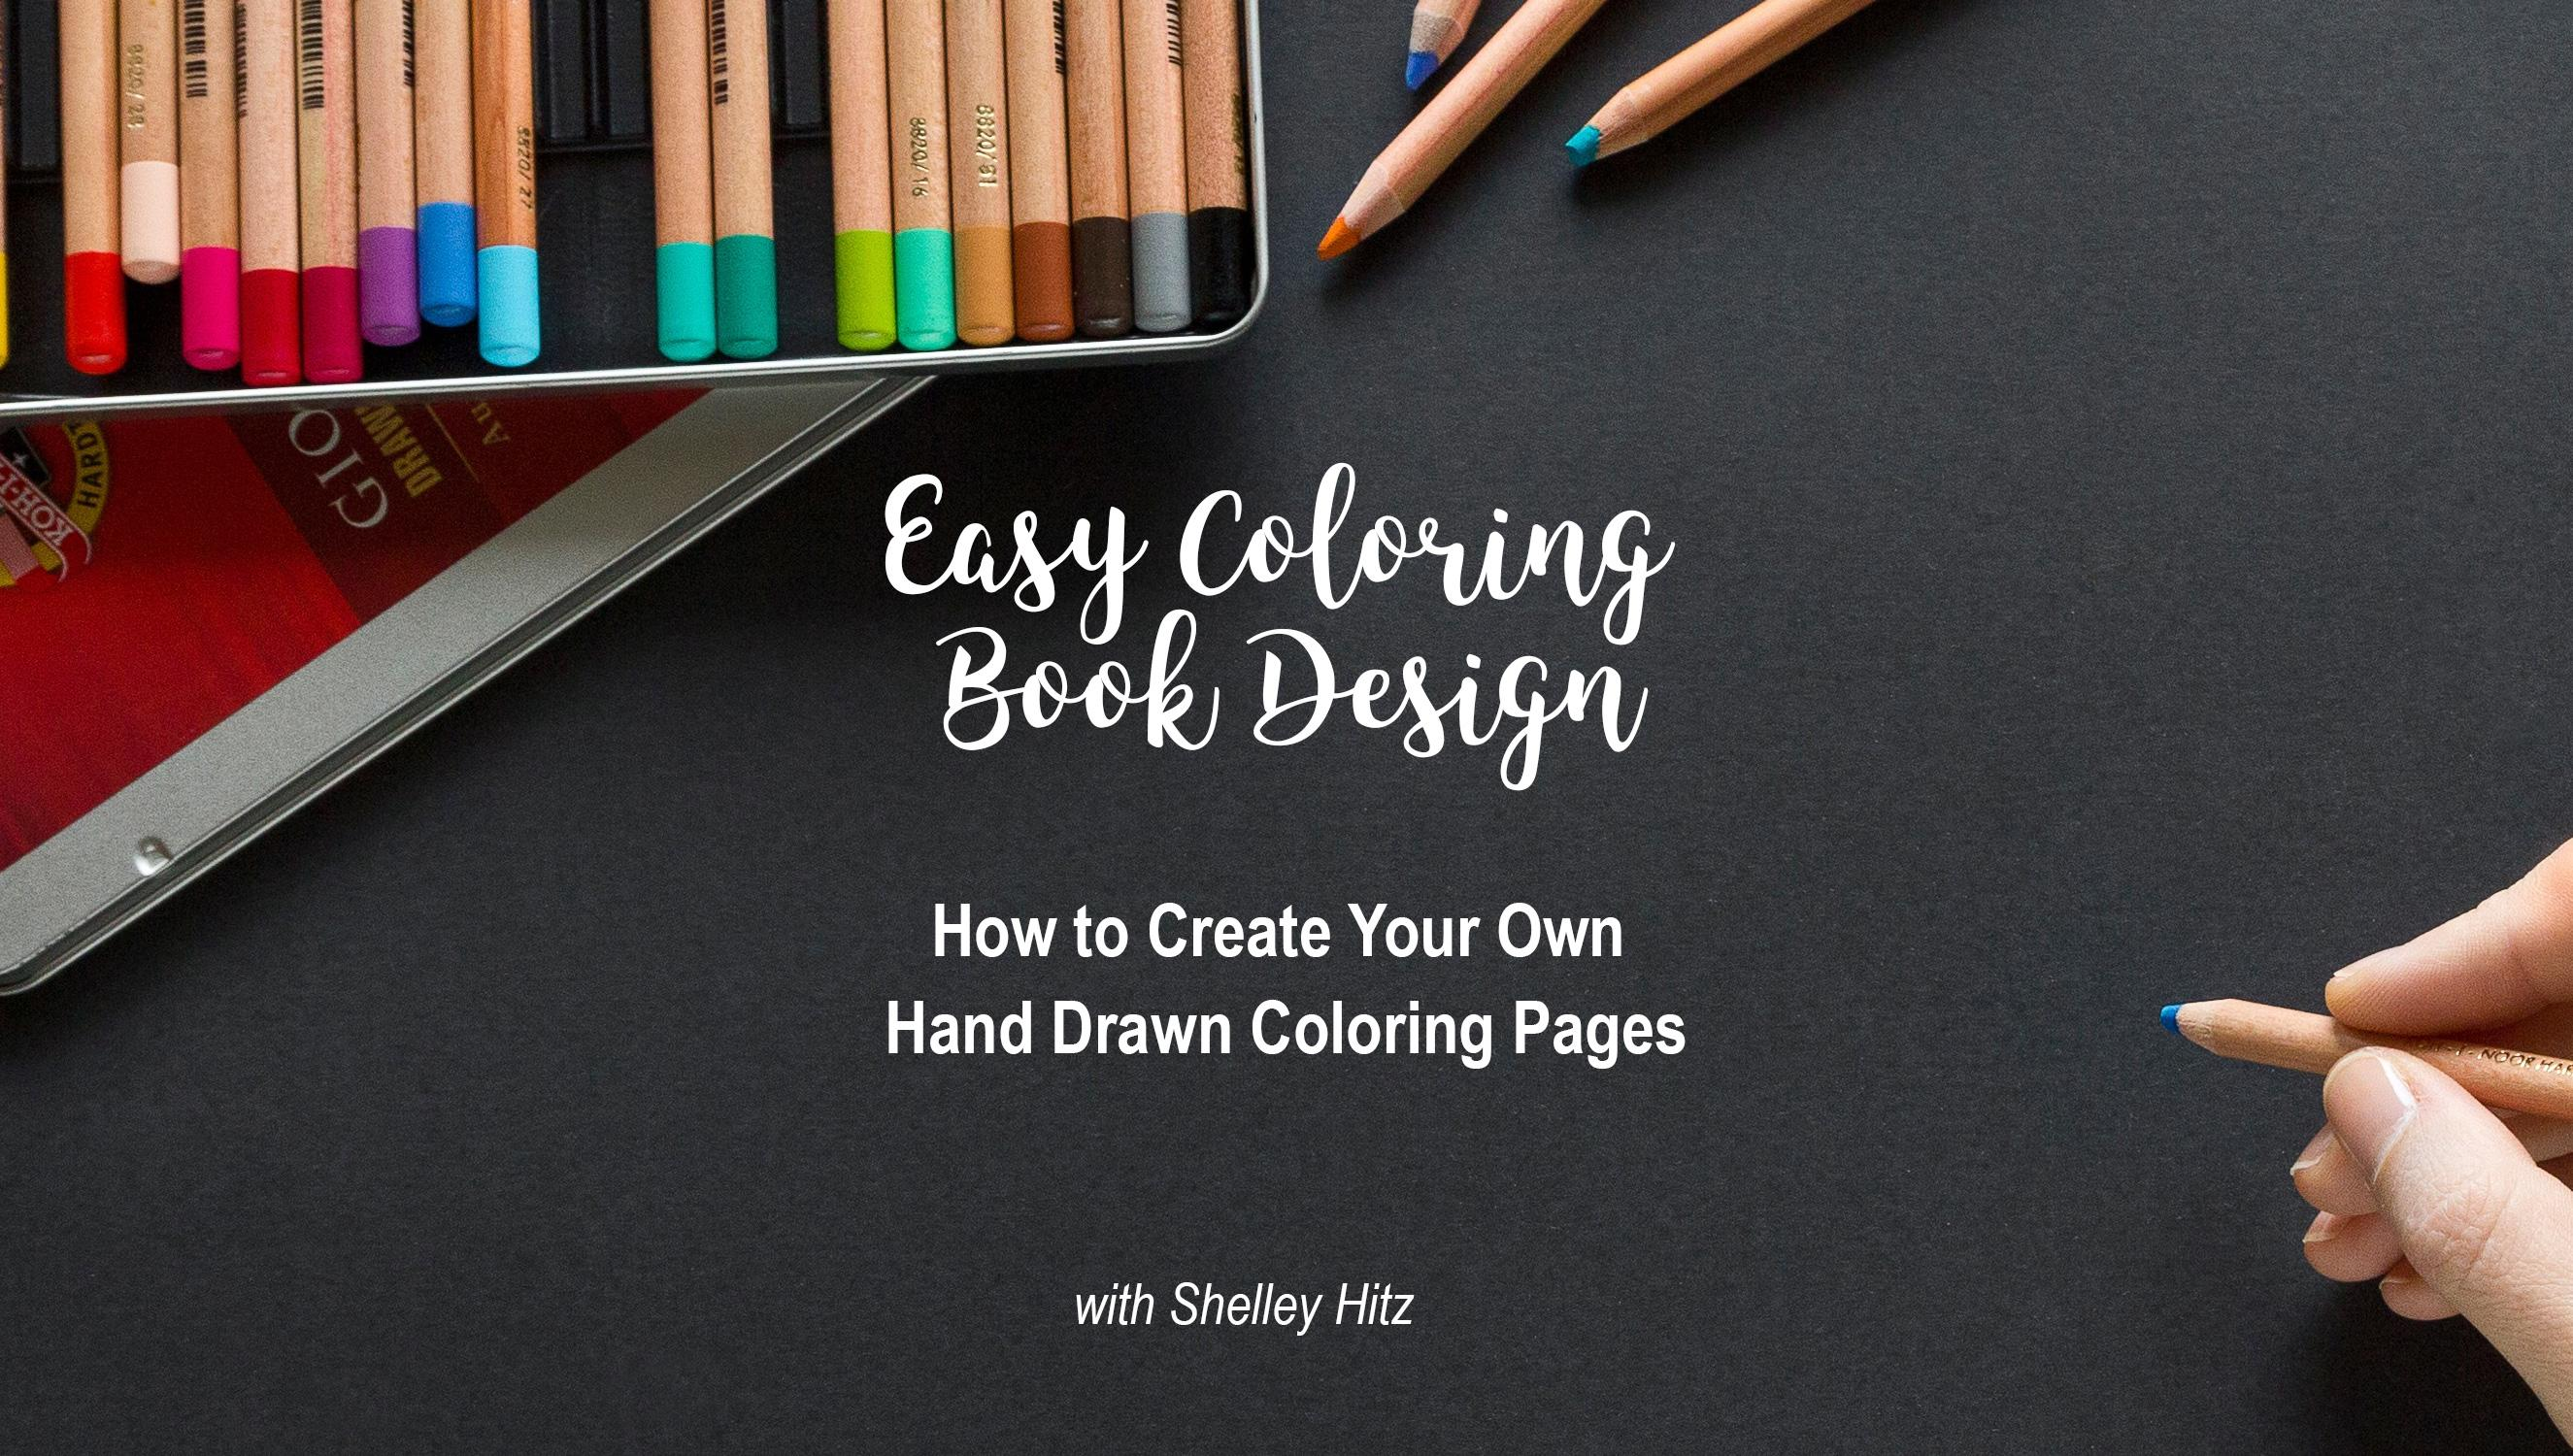 Easy Coloring Book Design: How to Create Your Own Hand Drawn ...